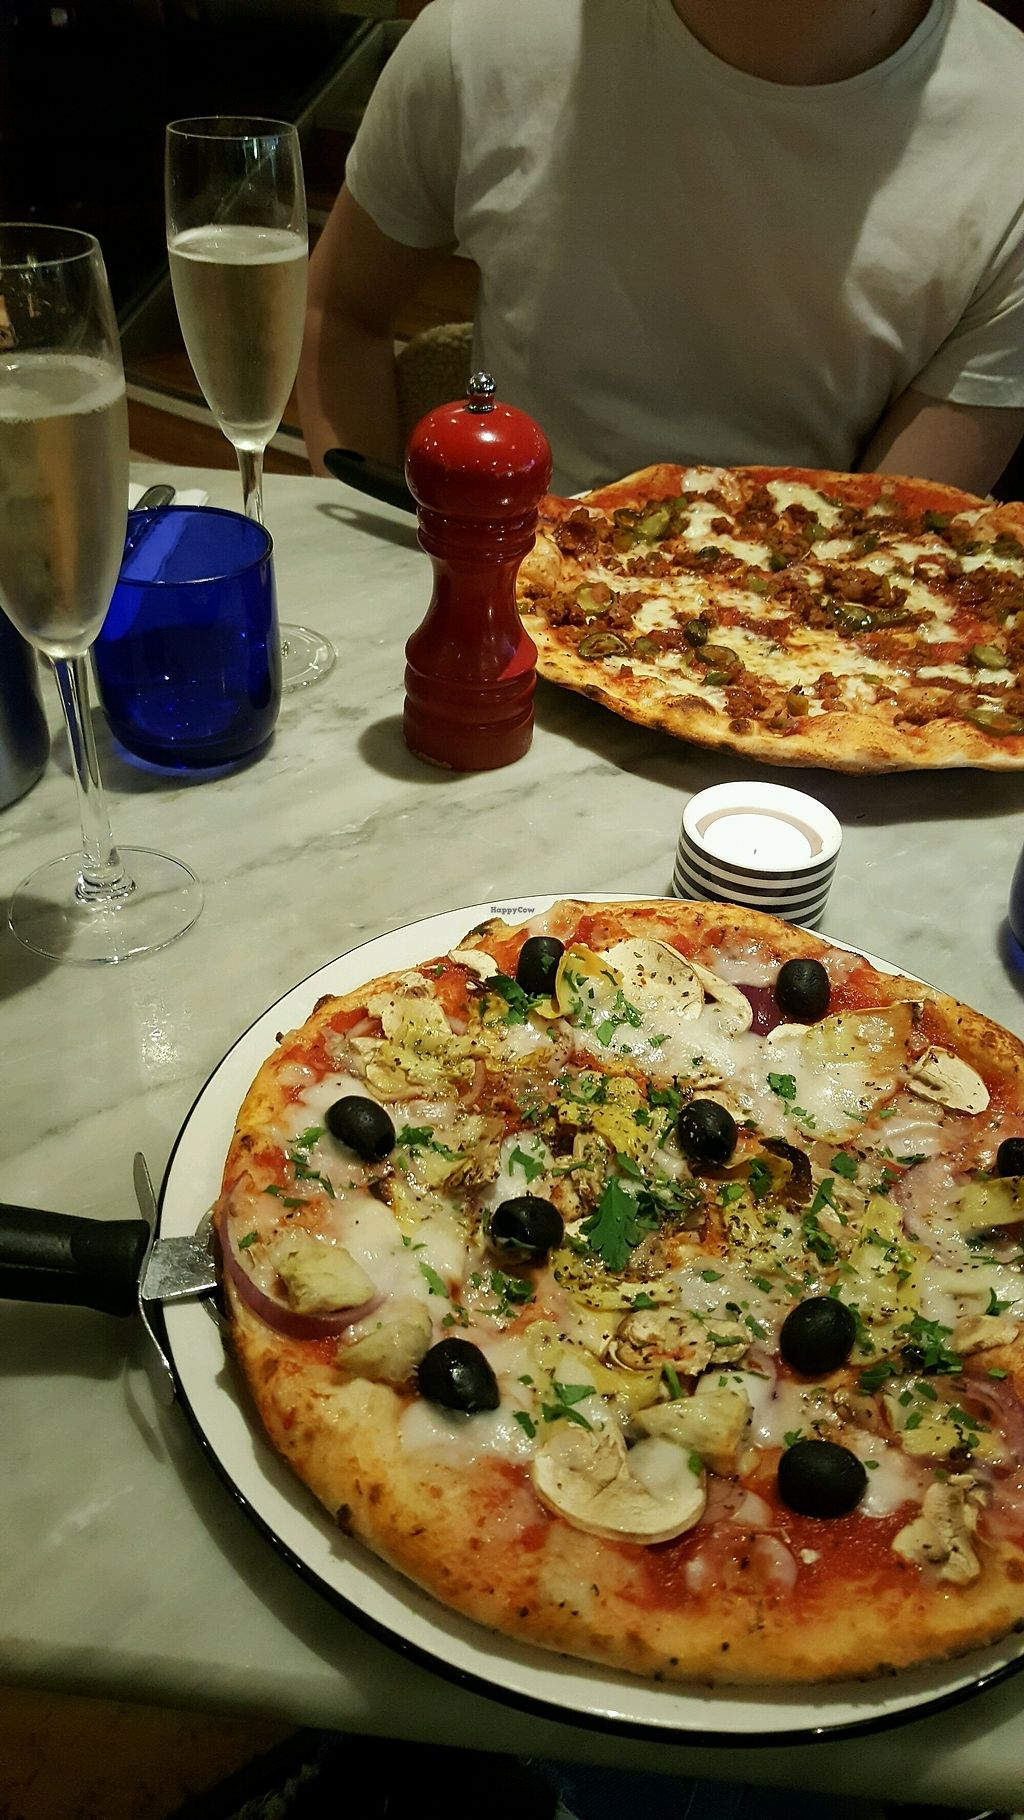 """Photo of Pizza Express - Eldon Square  by <a href=""""/members/profile/HannahCharlotte"""">HannahCharlotte</a> <br/>The Vegan Giardiniera (vegan mozzarella, artichokes, mushrooms, red onions and black olives)  <br/> April 11, 2018  - <a href='/contact/abuse/image/98870/383985'>Report</a>"""